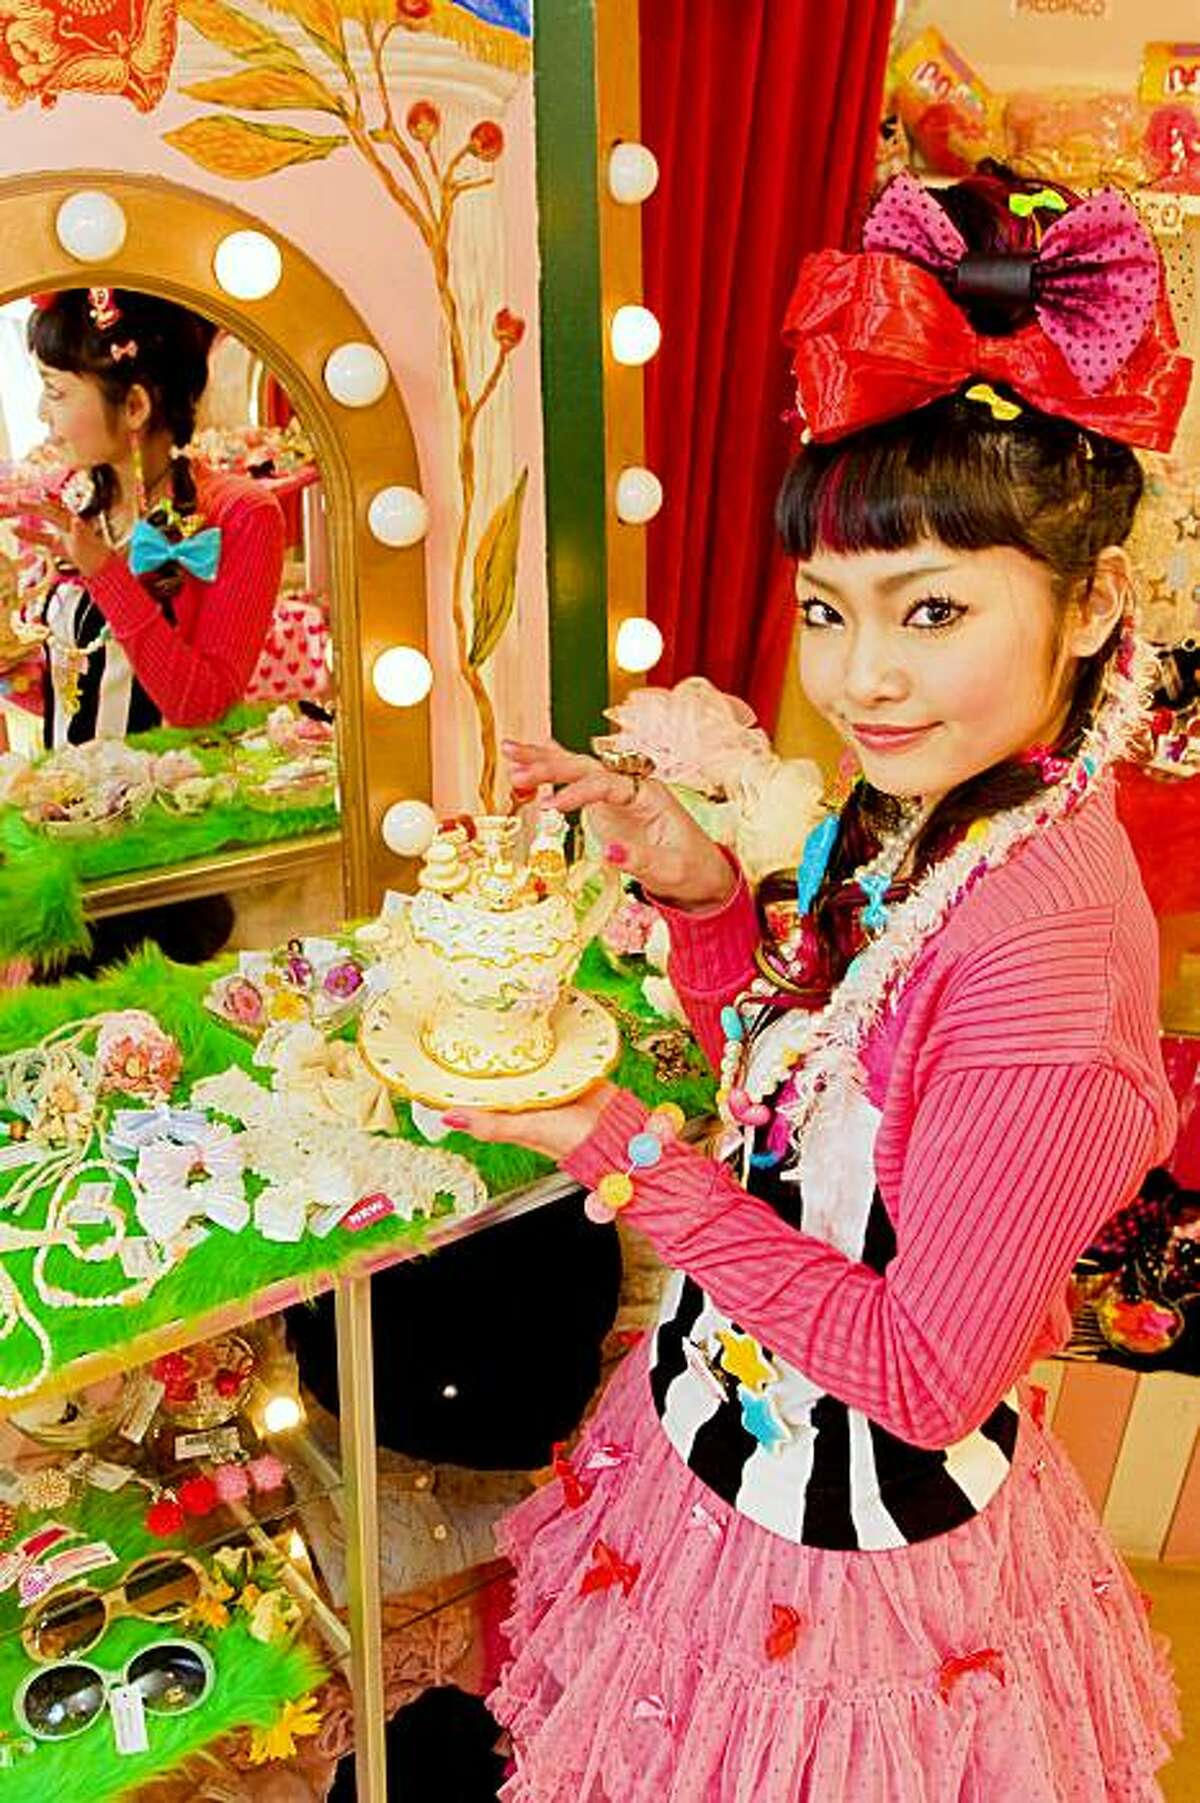 Image from Harajuku fashion label 6%DOKIDOKI, which will be part of the new New People complex in Japantown.